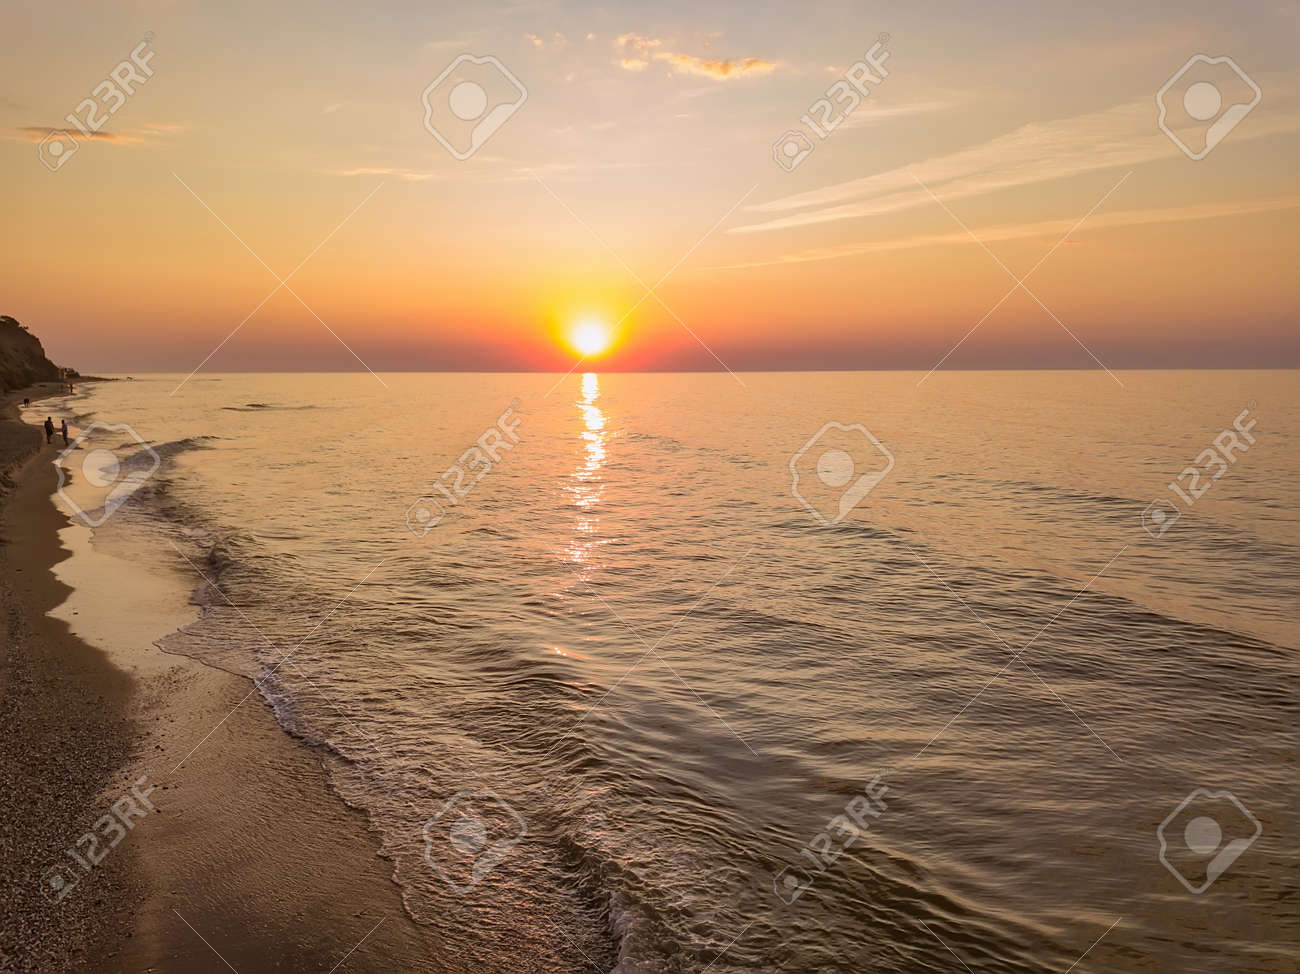 Aerial panoramic view of sunrise over ssea. Nothing but sky, clouds and water. Beautiful serene scene - 140898694